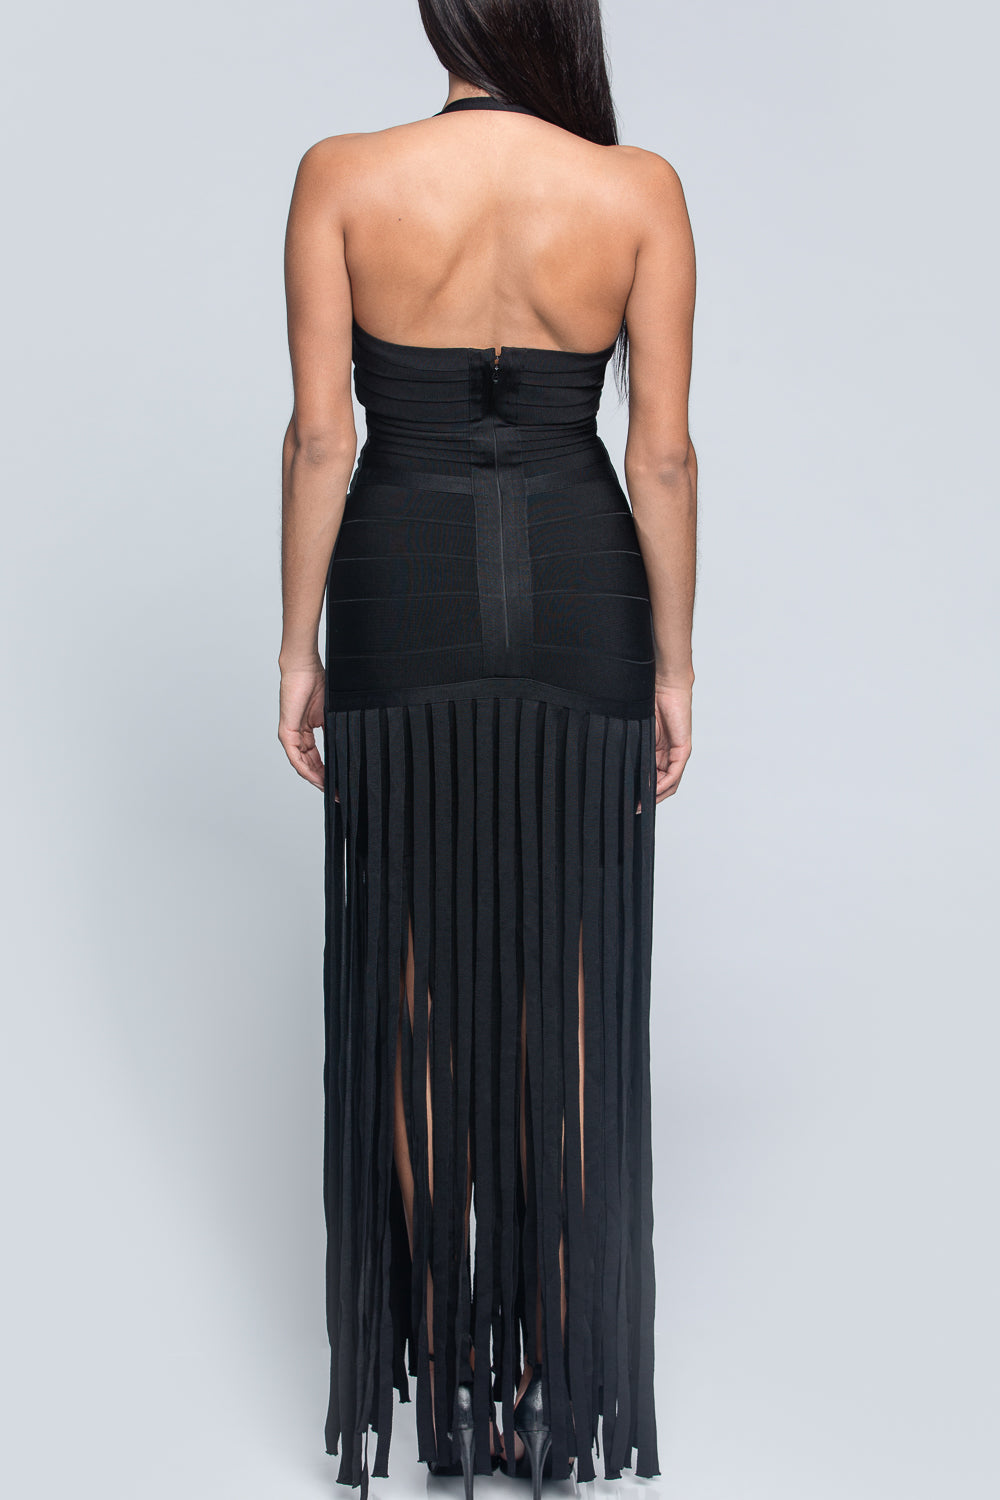 Bandage Fringe Maxi Dress